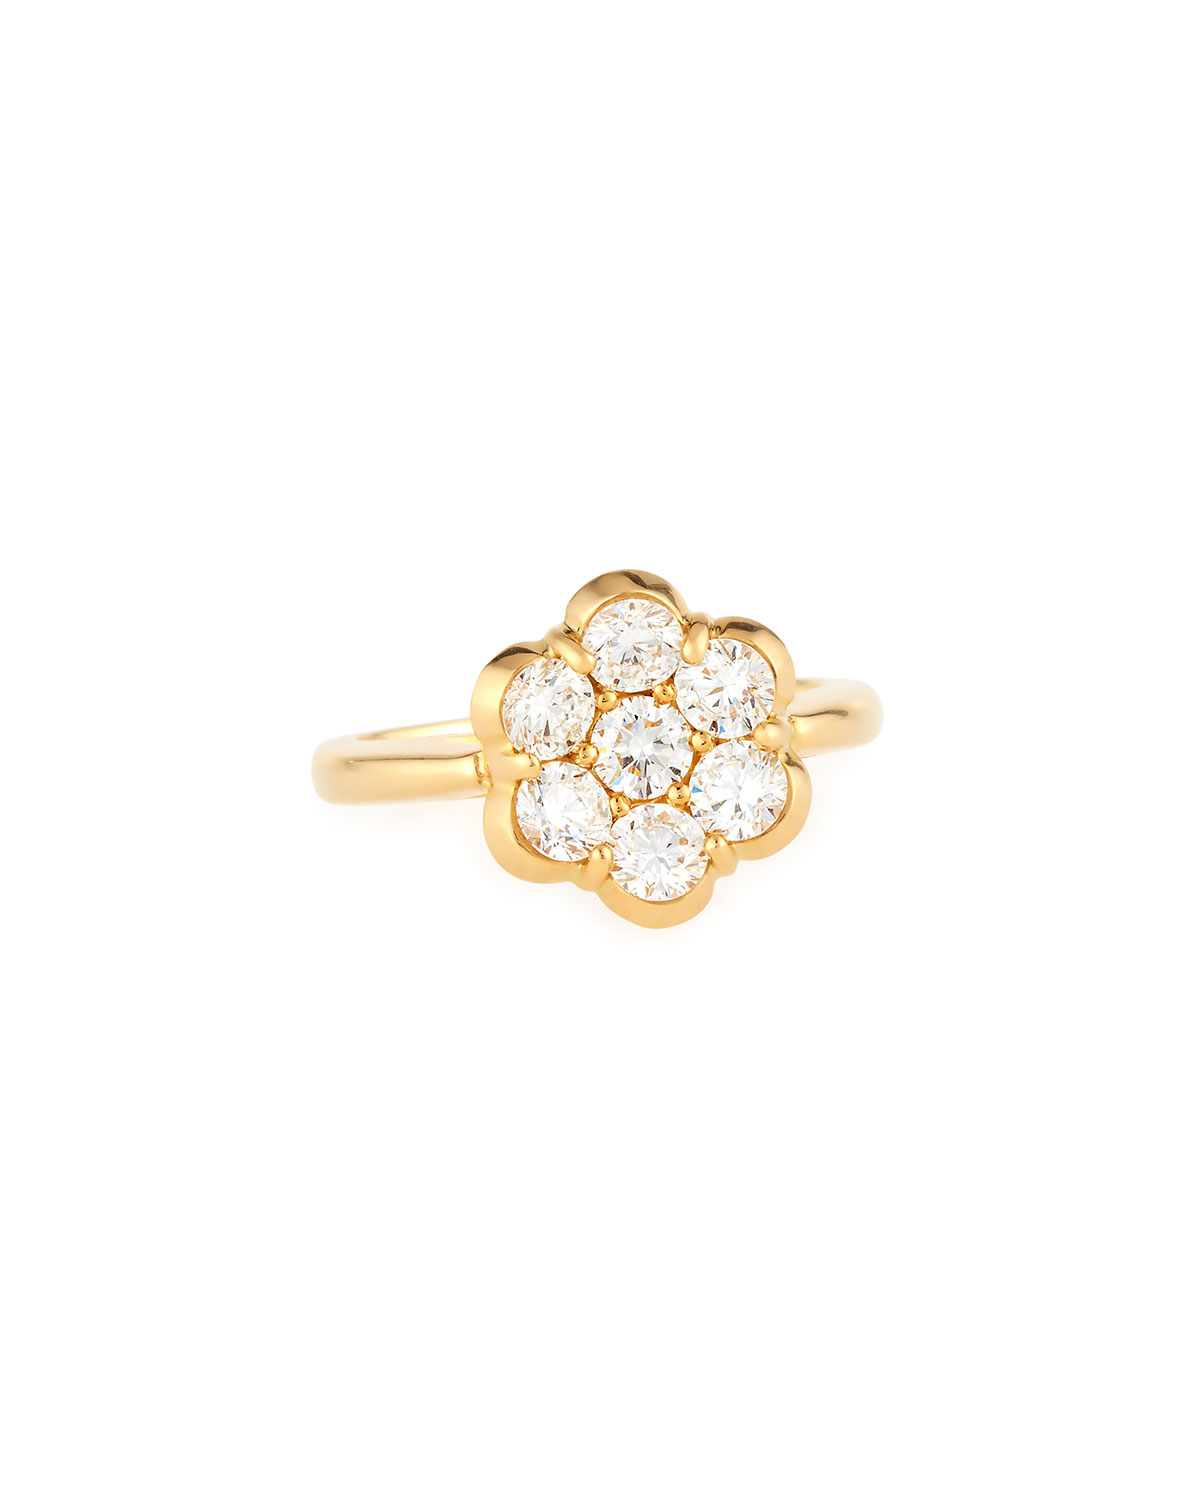 Bayco 18k Yellow Gold Diamond Flower Ring Neiman Marcus